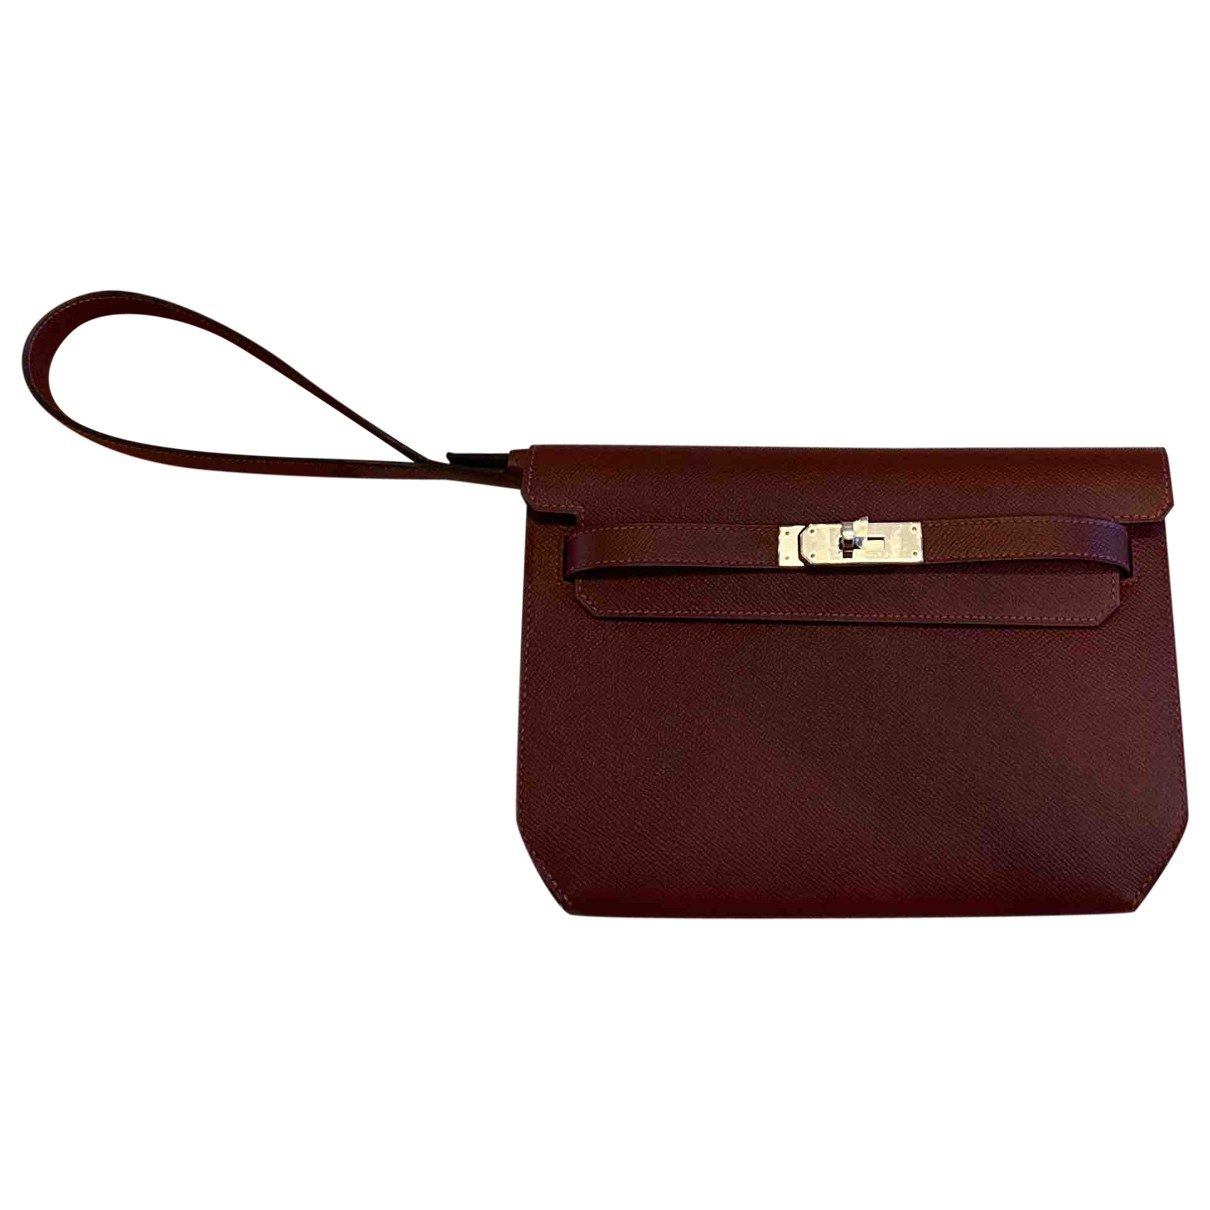 Hermès Kelly Dépêches Burgundy Leather Clutch bag for Women \N